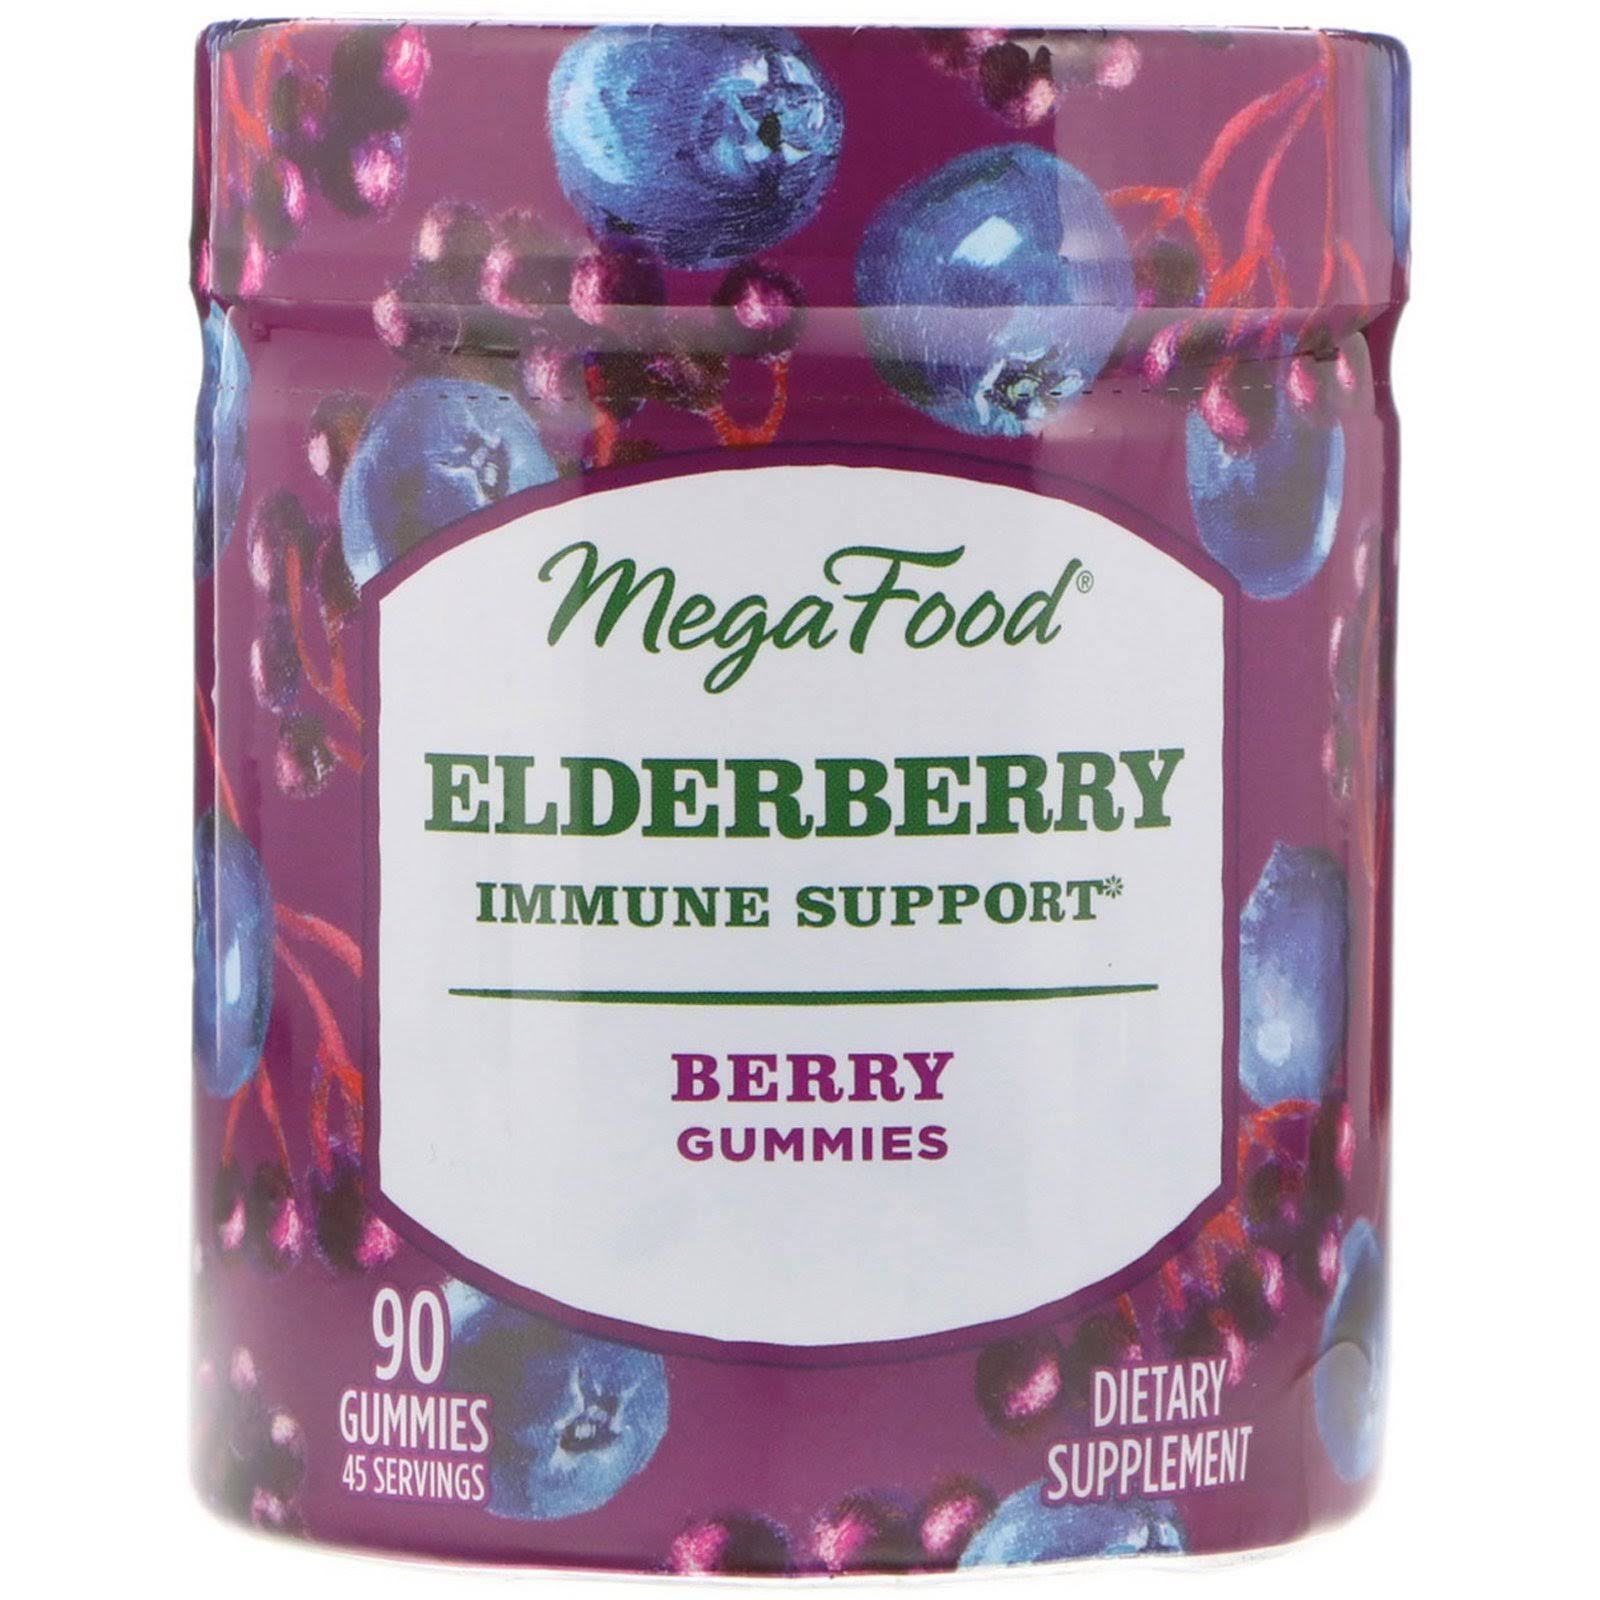 MegaFood - Elderberry Immune Support - 90 Gummies